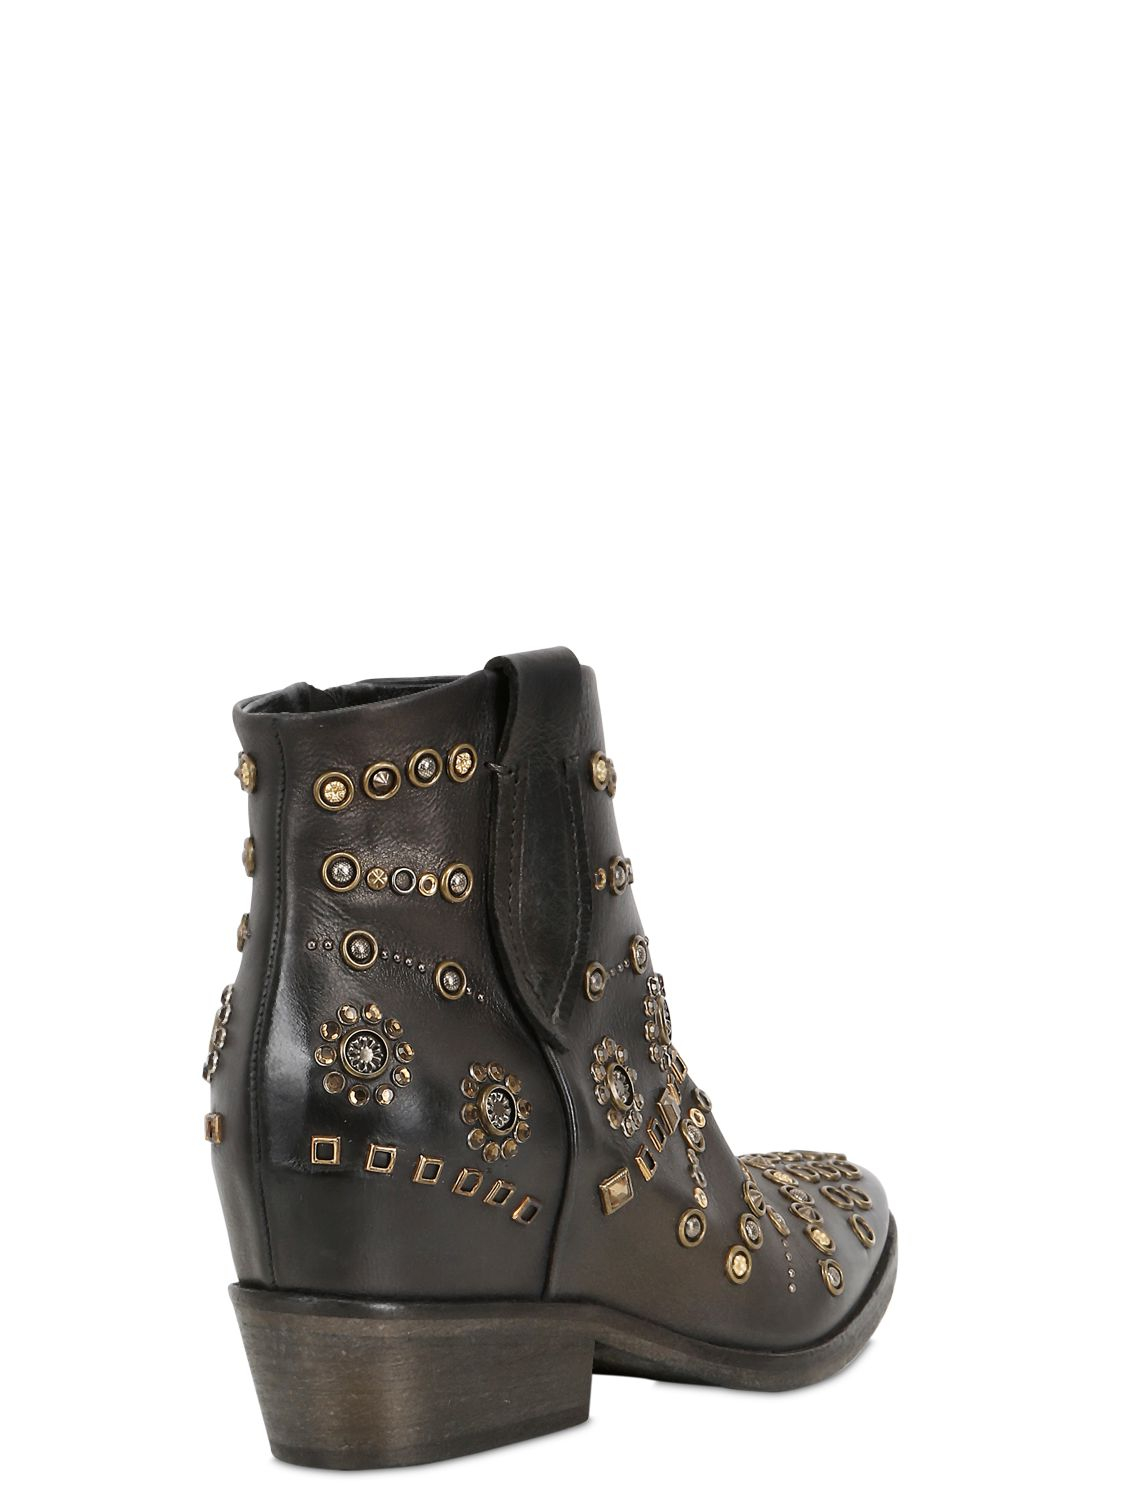 Strategia 80mm Embellished Leather Boots in Black